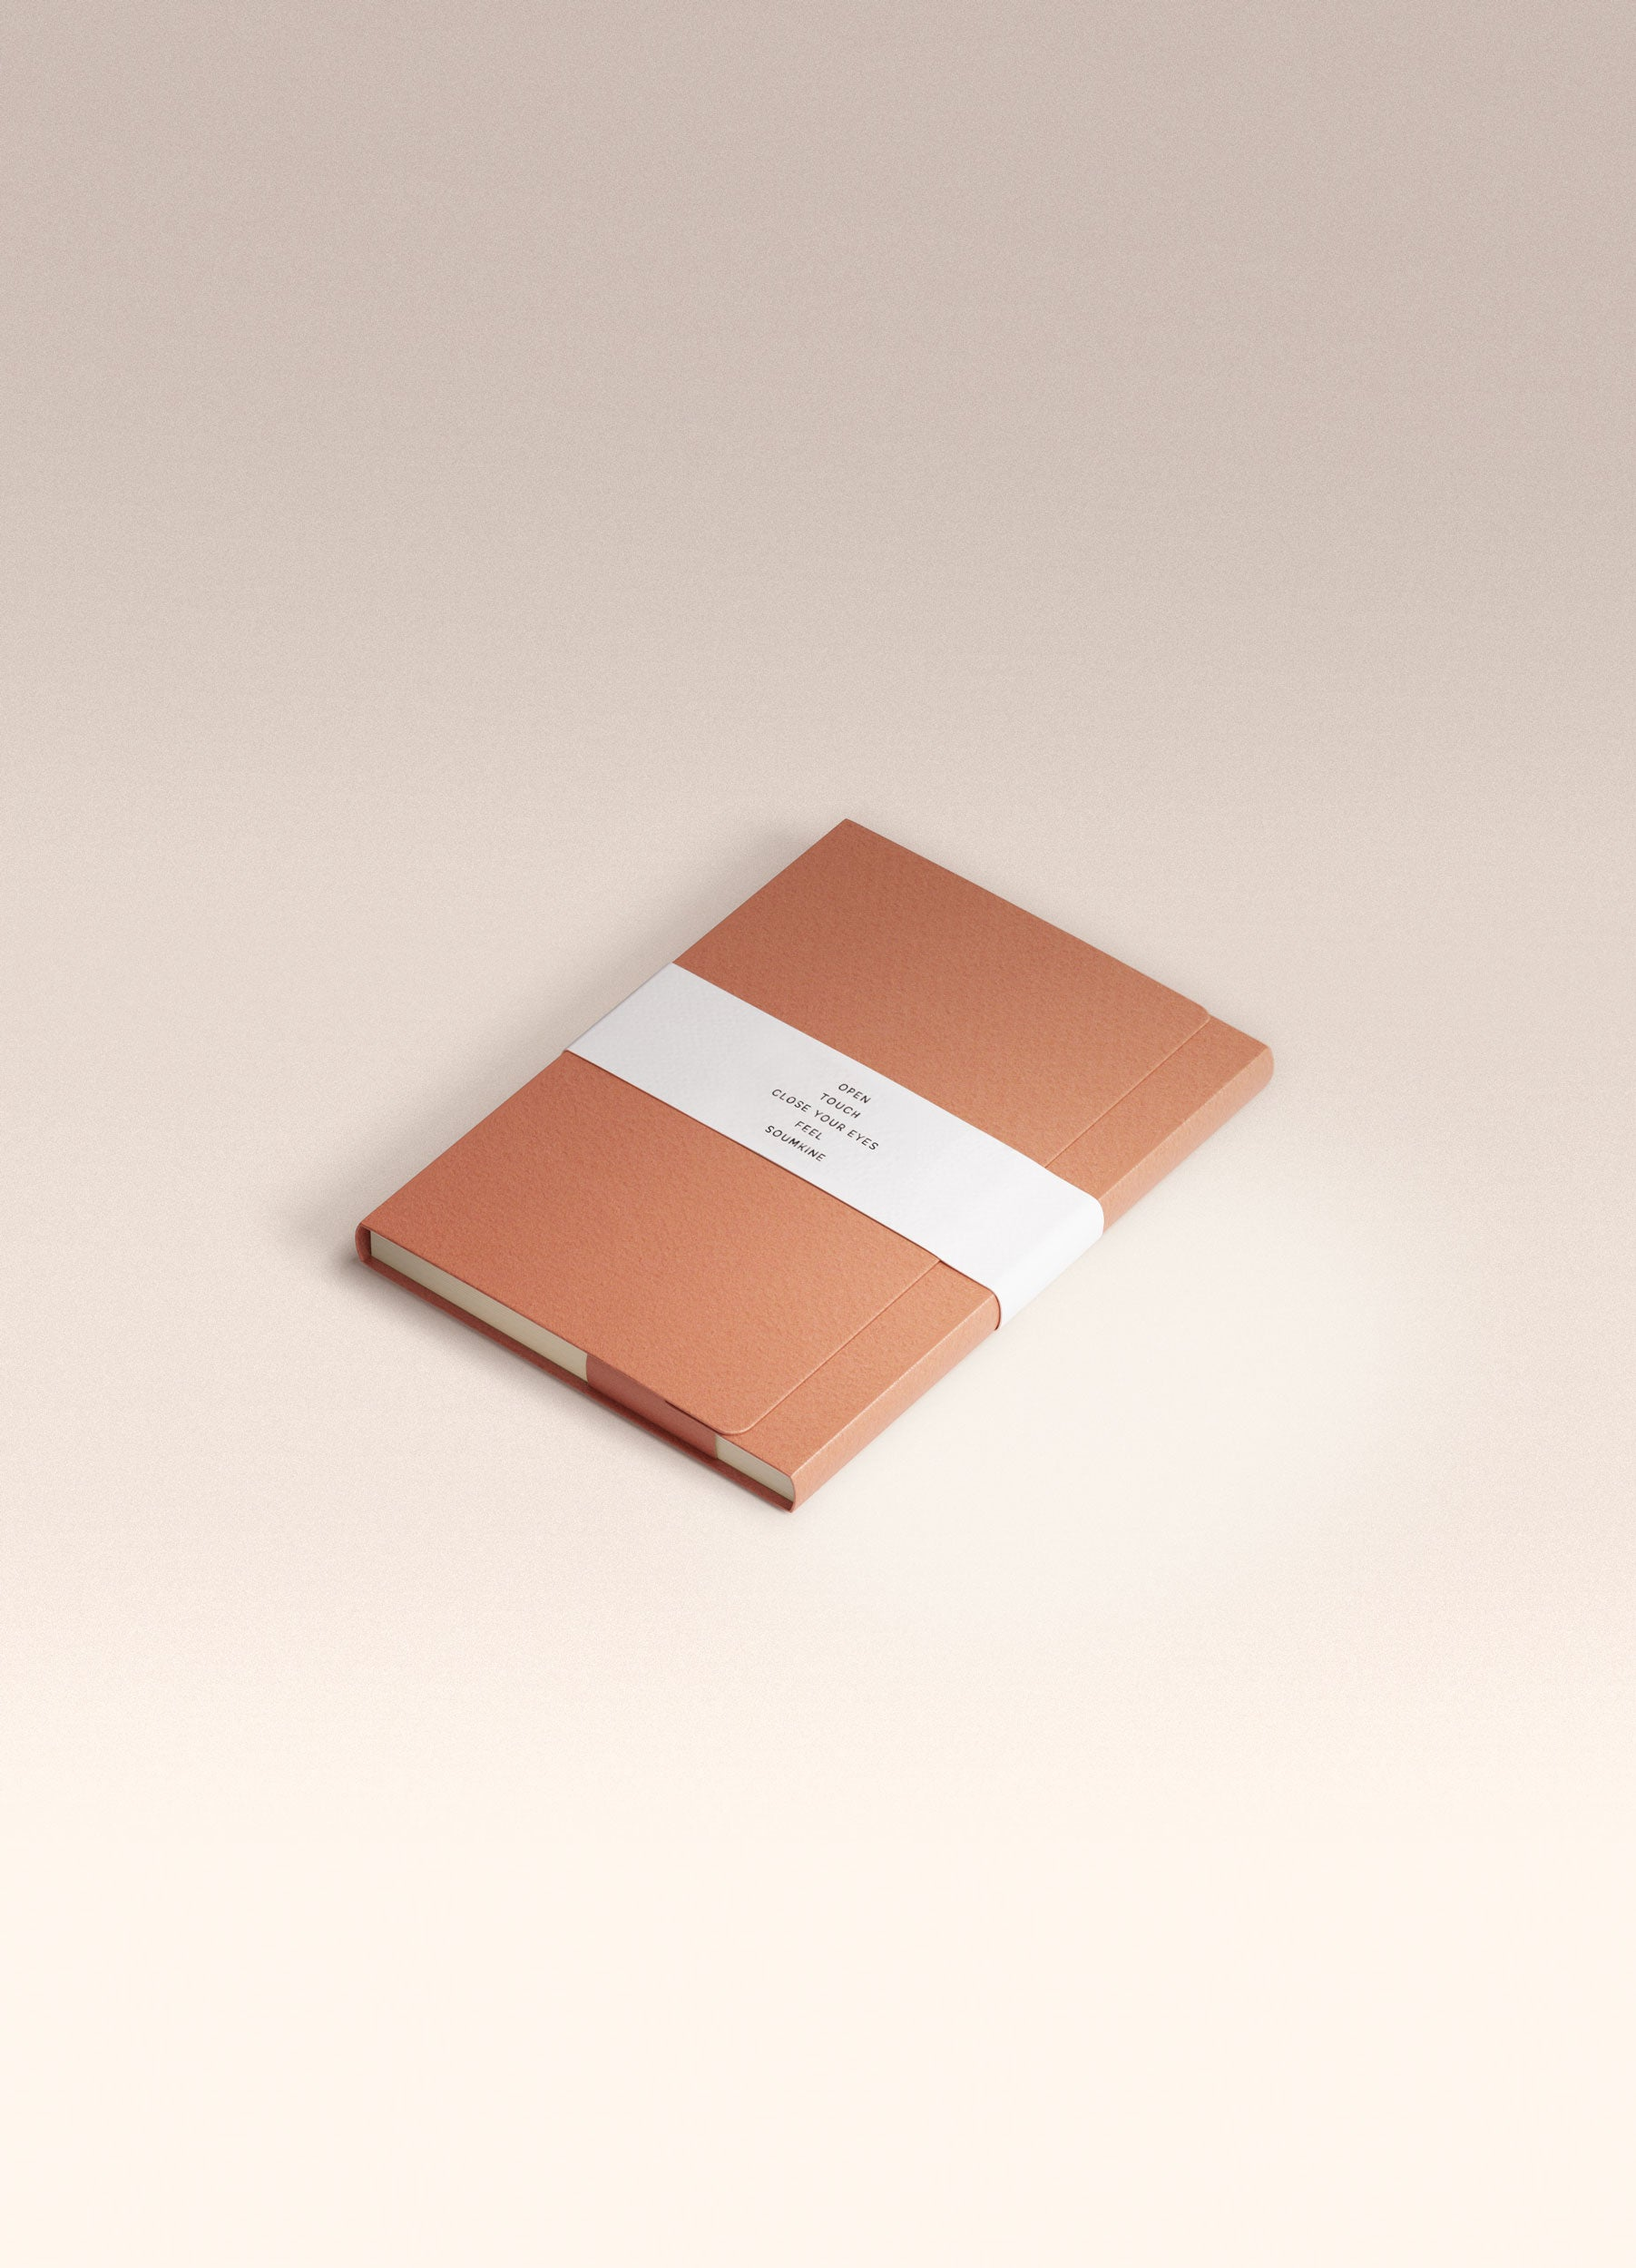 N.205 (DOTTED) Notebook. B6 size